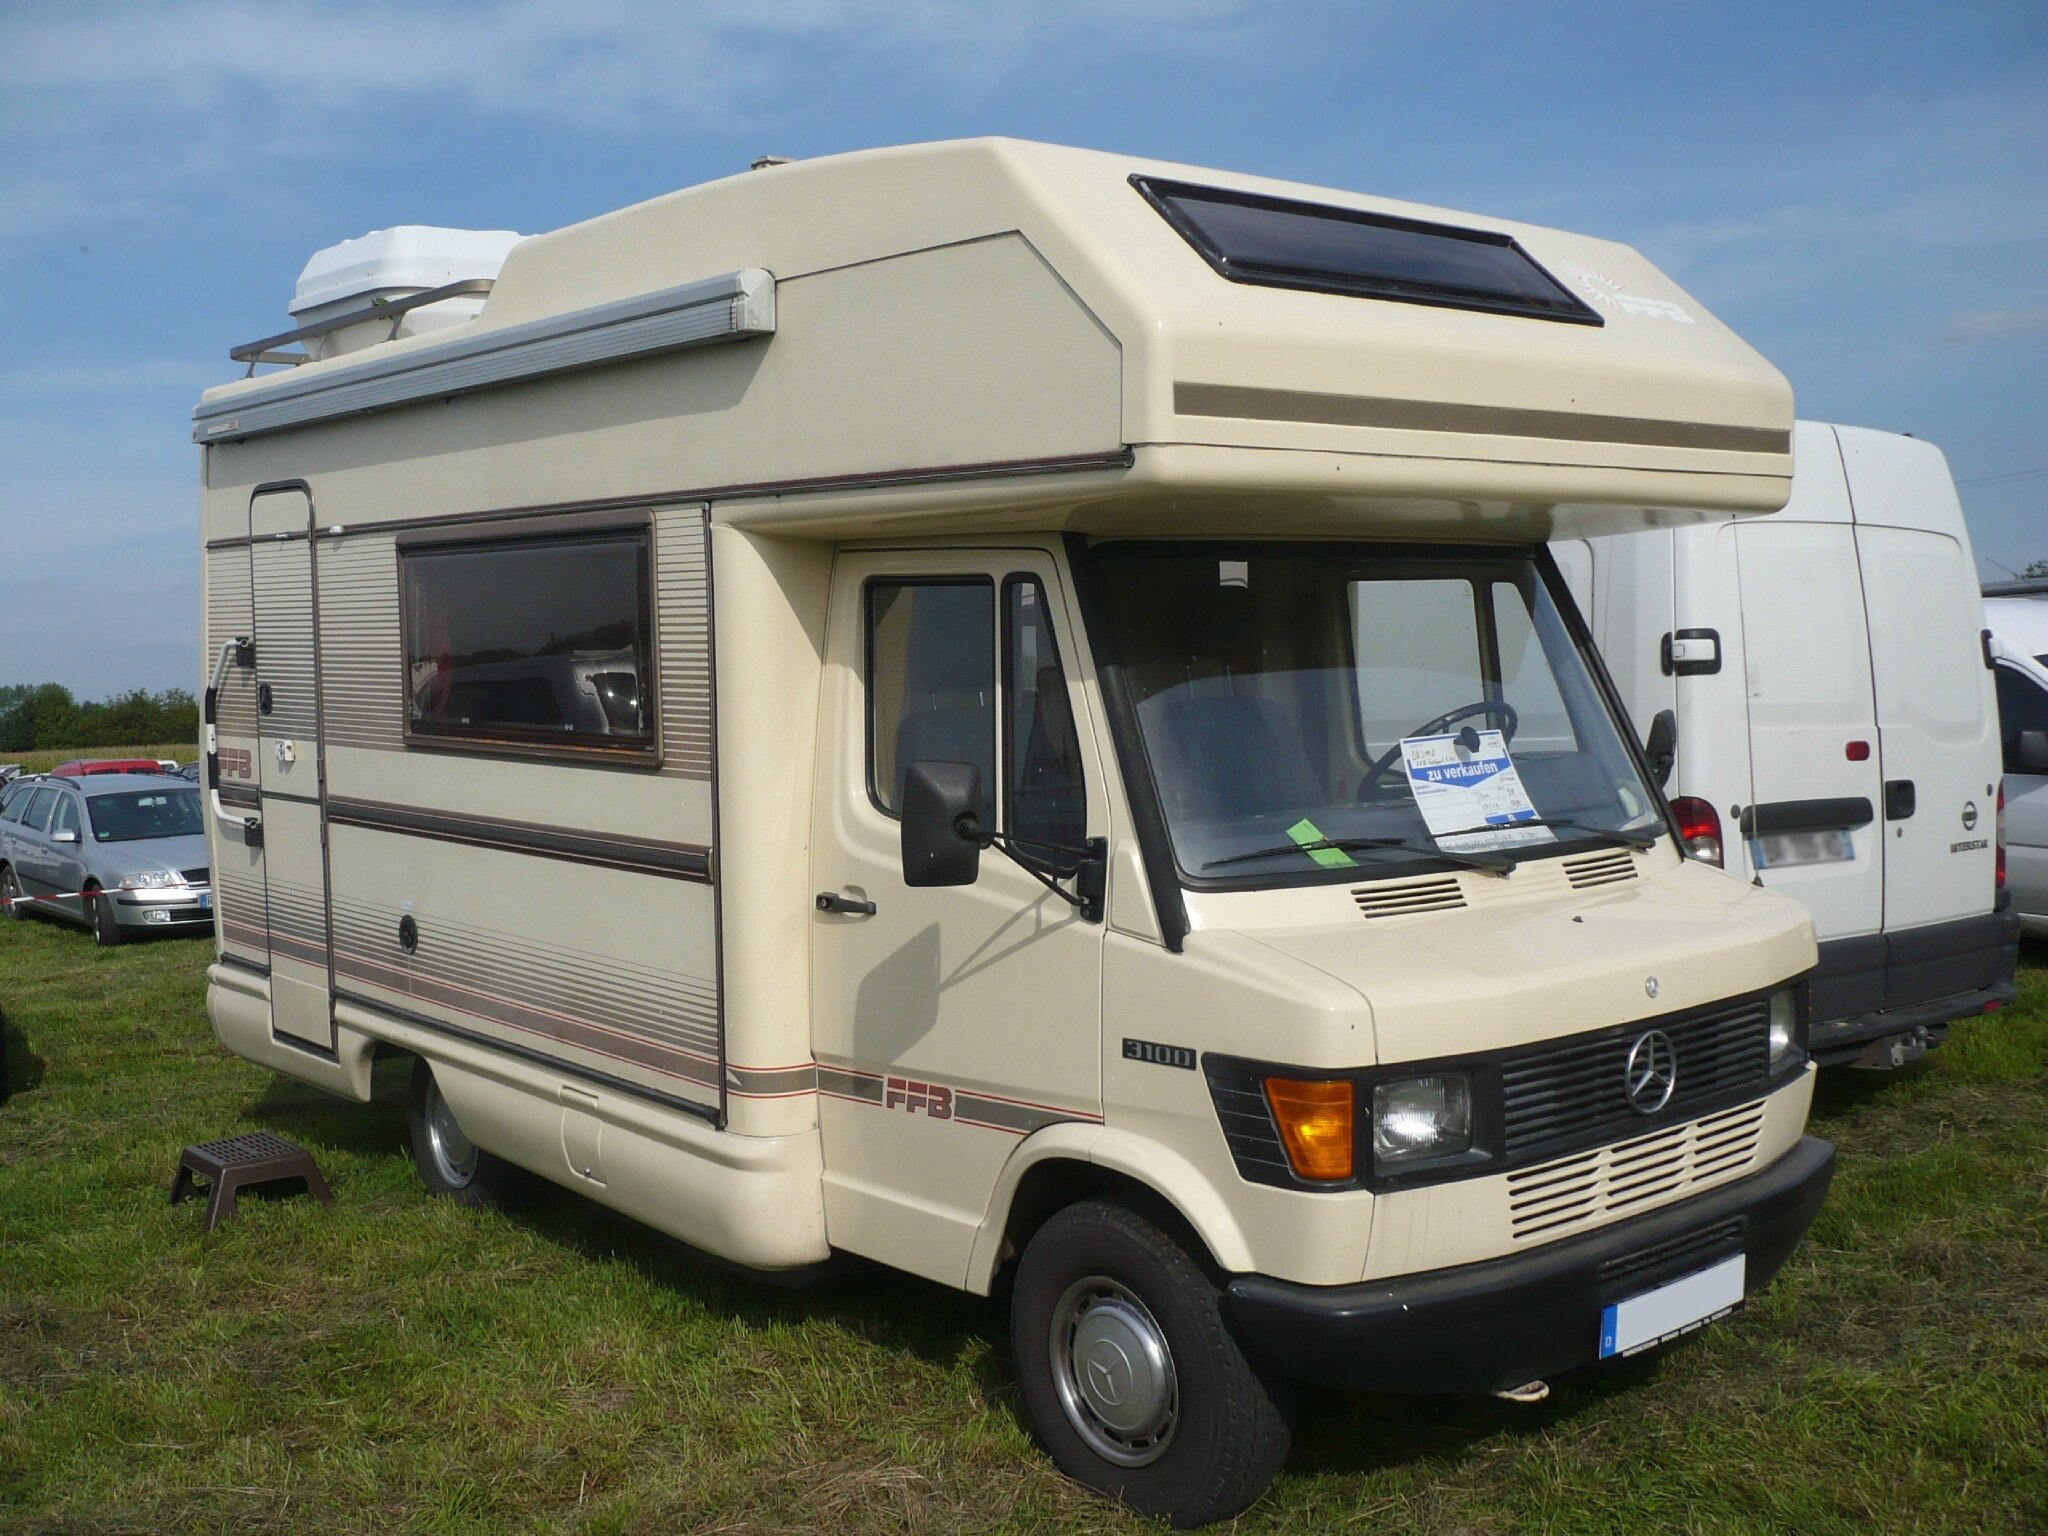 mercedes 310d ffb tabbert europa 560 camping car 1993 vroom vroom. Black Bedroom Furniture Sets. Home Design Ideas